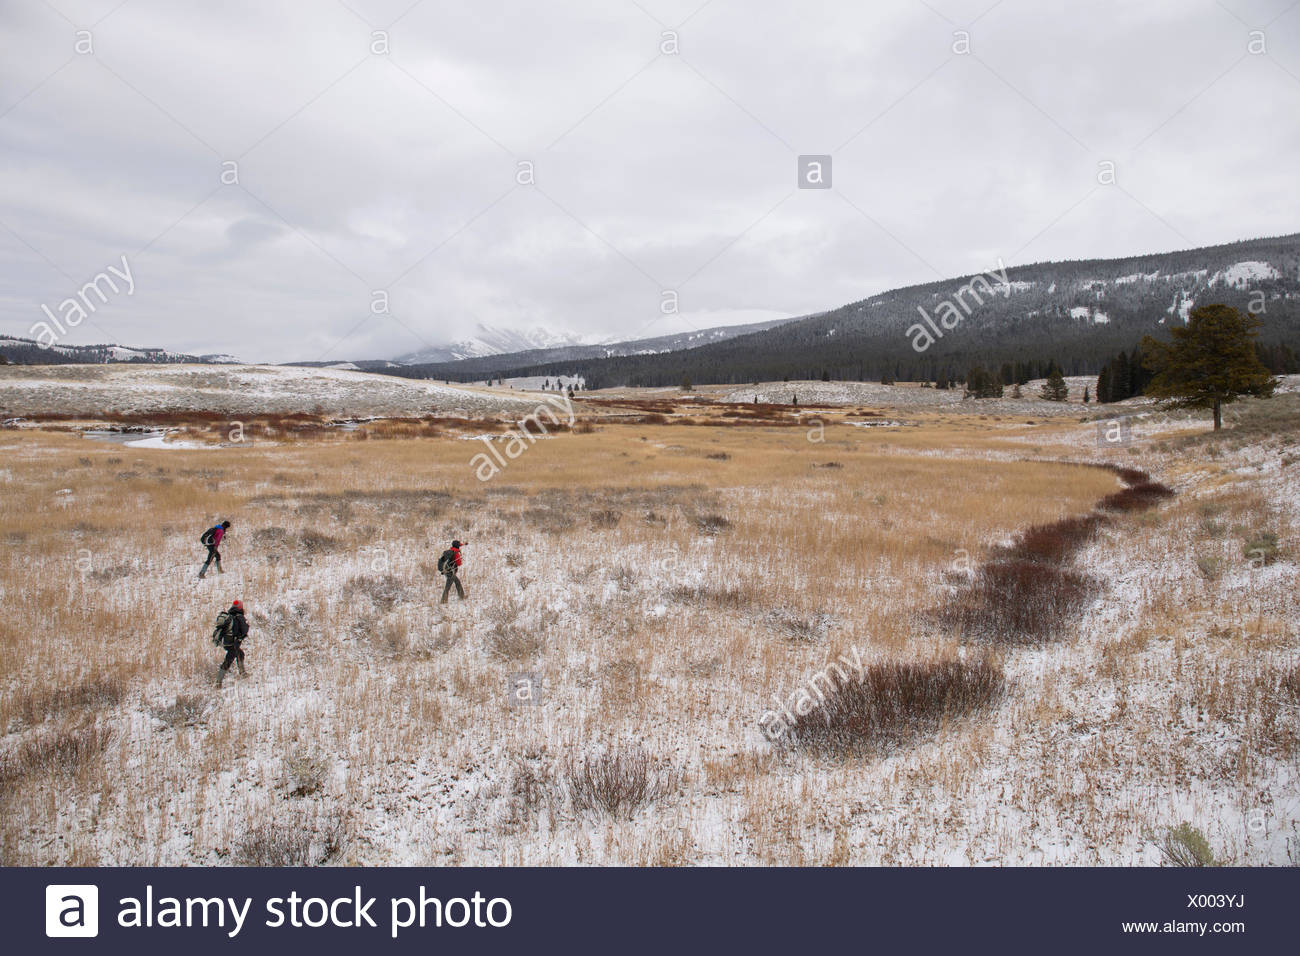 Les membres de l'établissement Yellowstone Wolf Project trek d'inspecter un loup malade dans le trou du Gardiner, dans le nord du parc national Yellowstone. Photo Stock